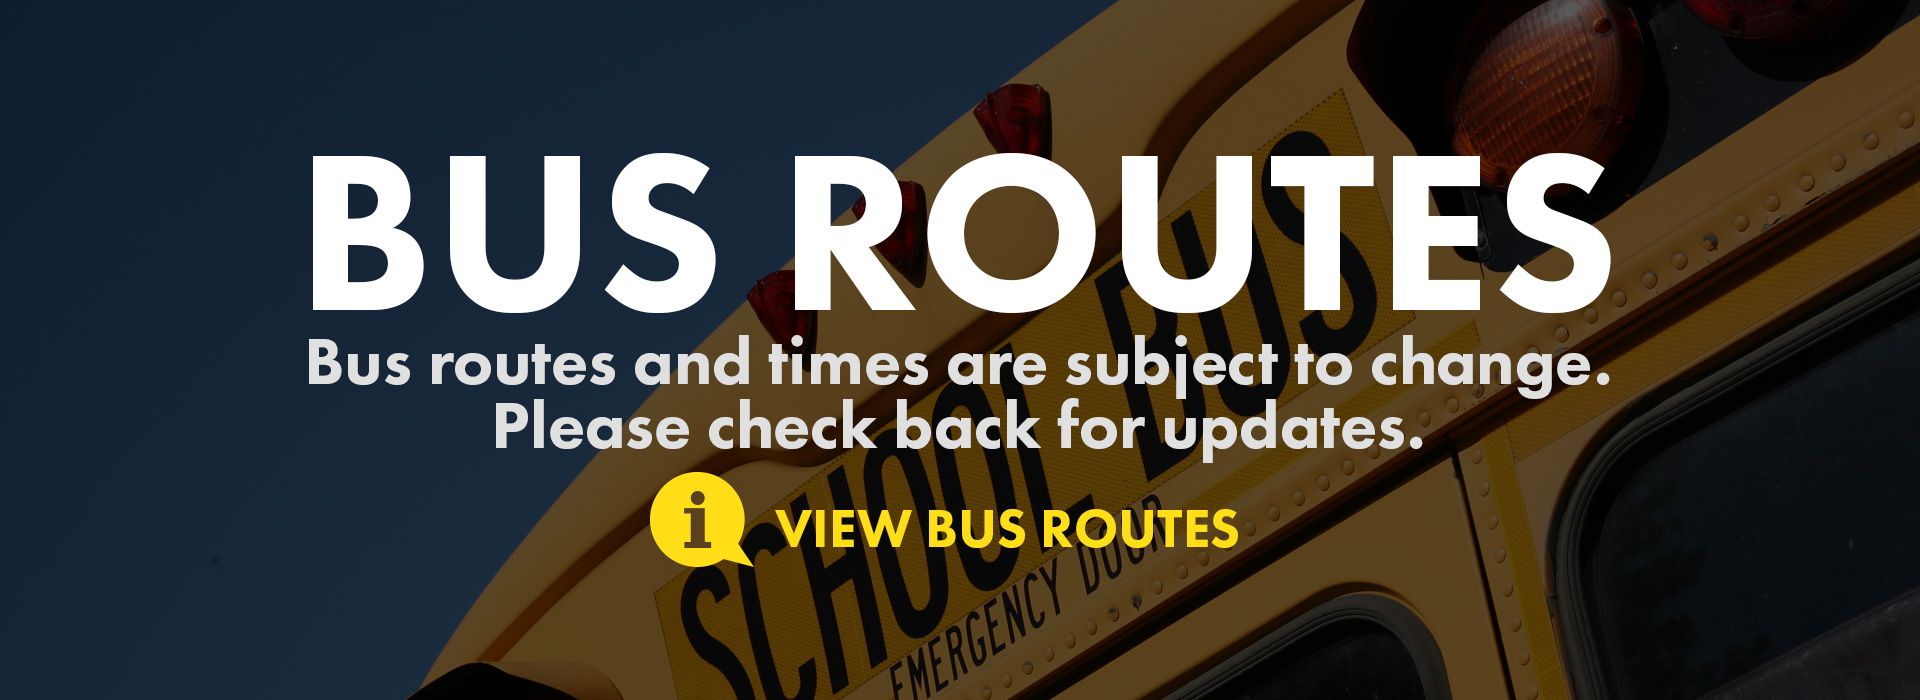 bus route and times change